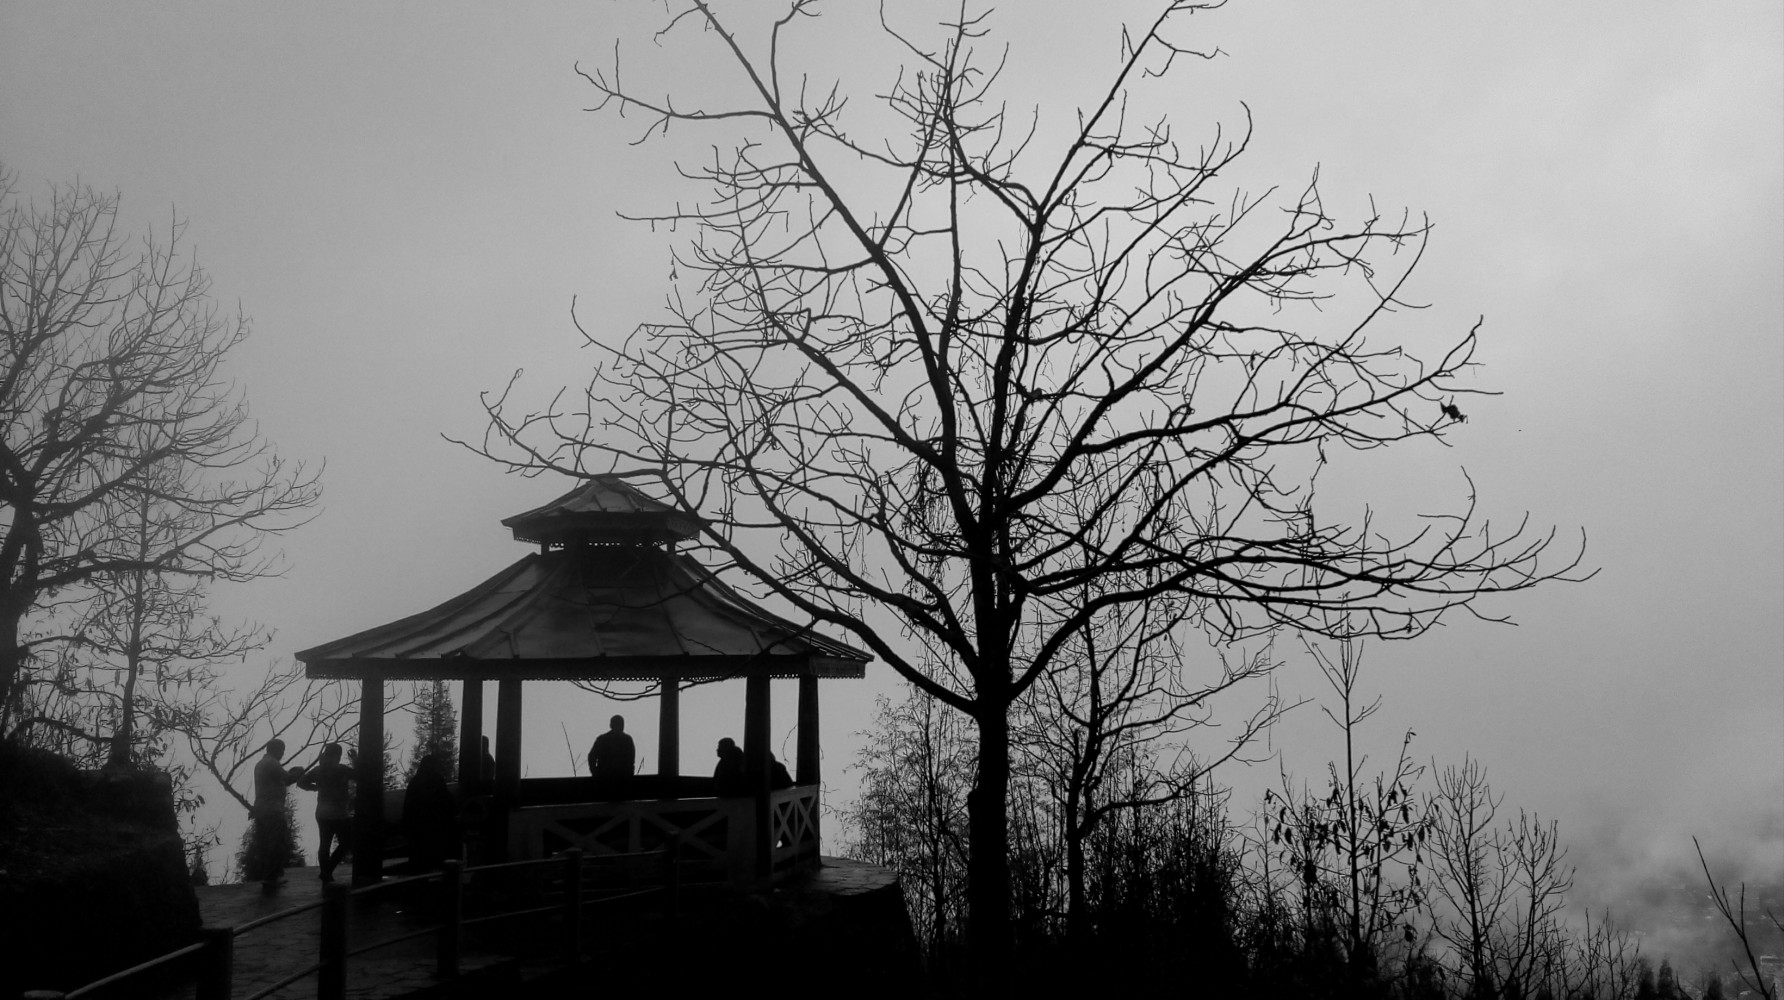 I was in the botanical garden in gangtok. I saw the combination of the tree and the shed. They together looked very nice and creates a perfect scenario in the foggy weather. They together shared their respective beauty. If they were separated then they will be not a subject of interest.